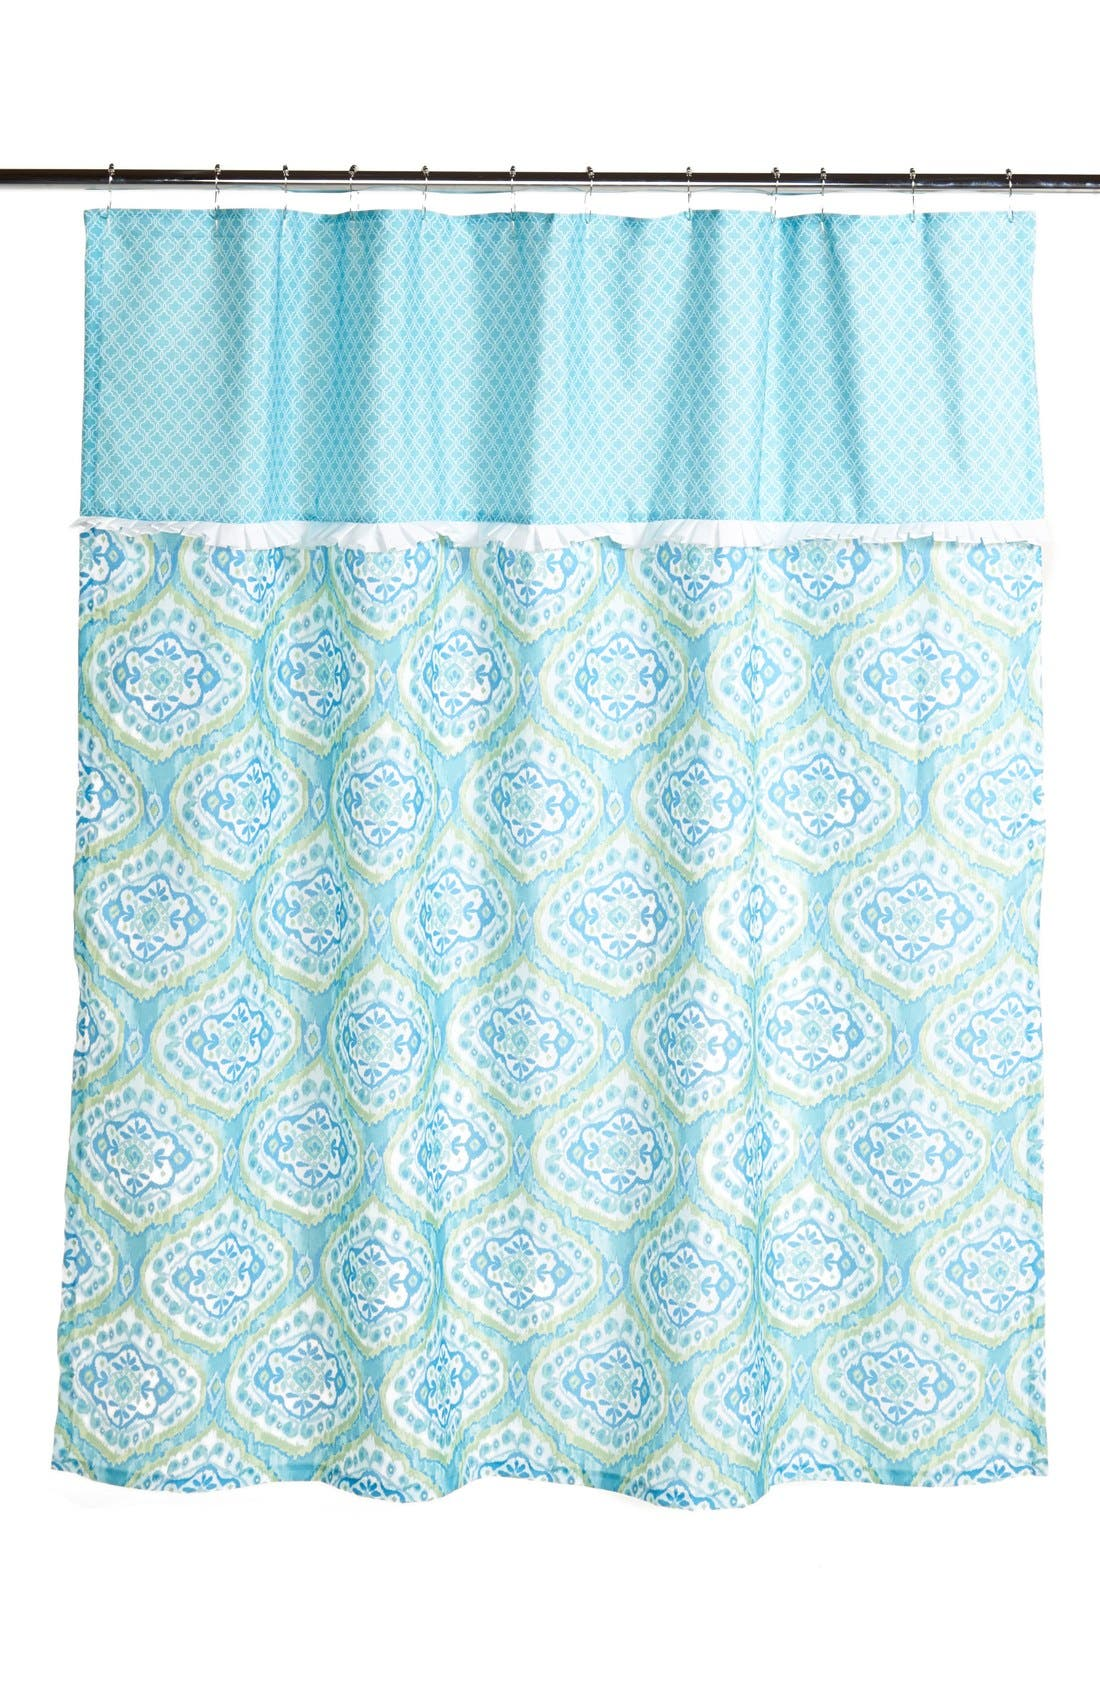 'Tangiers' Shower Curtain,                         Main,                         color, 440